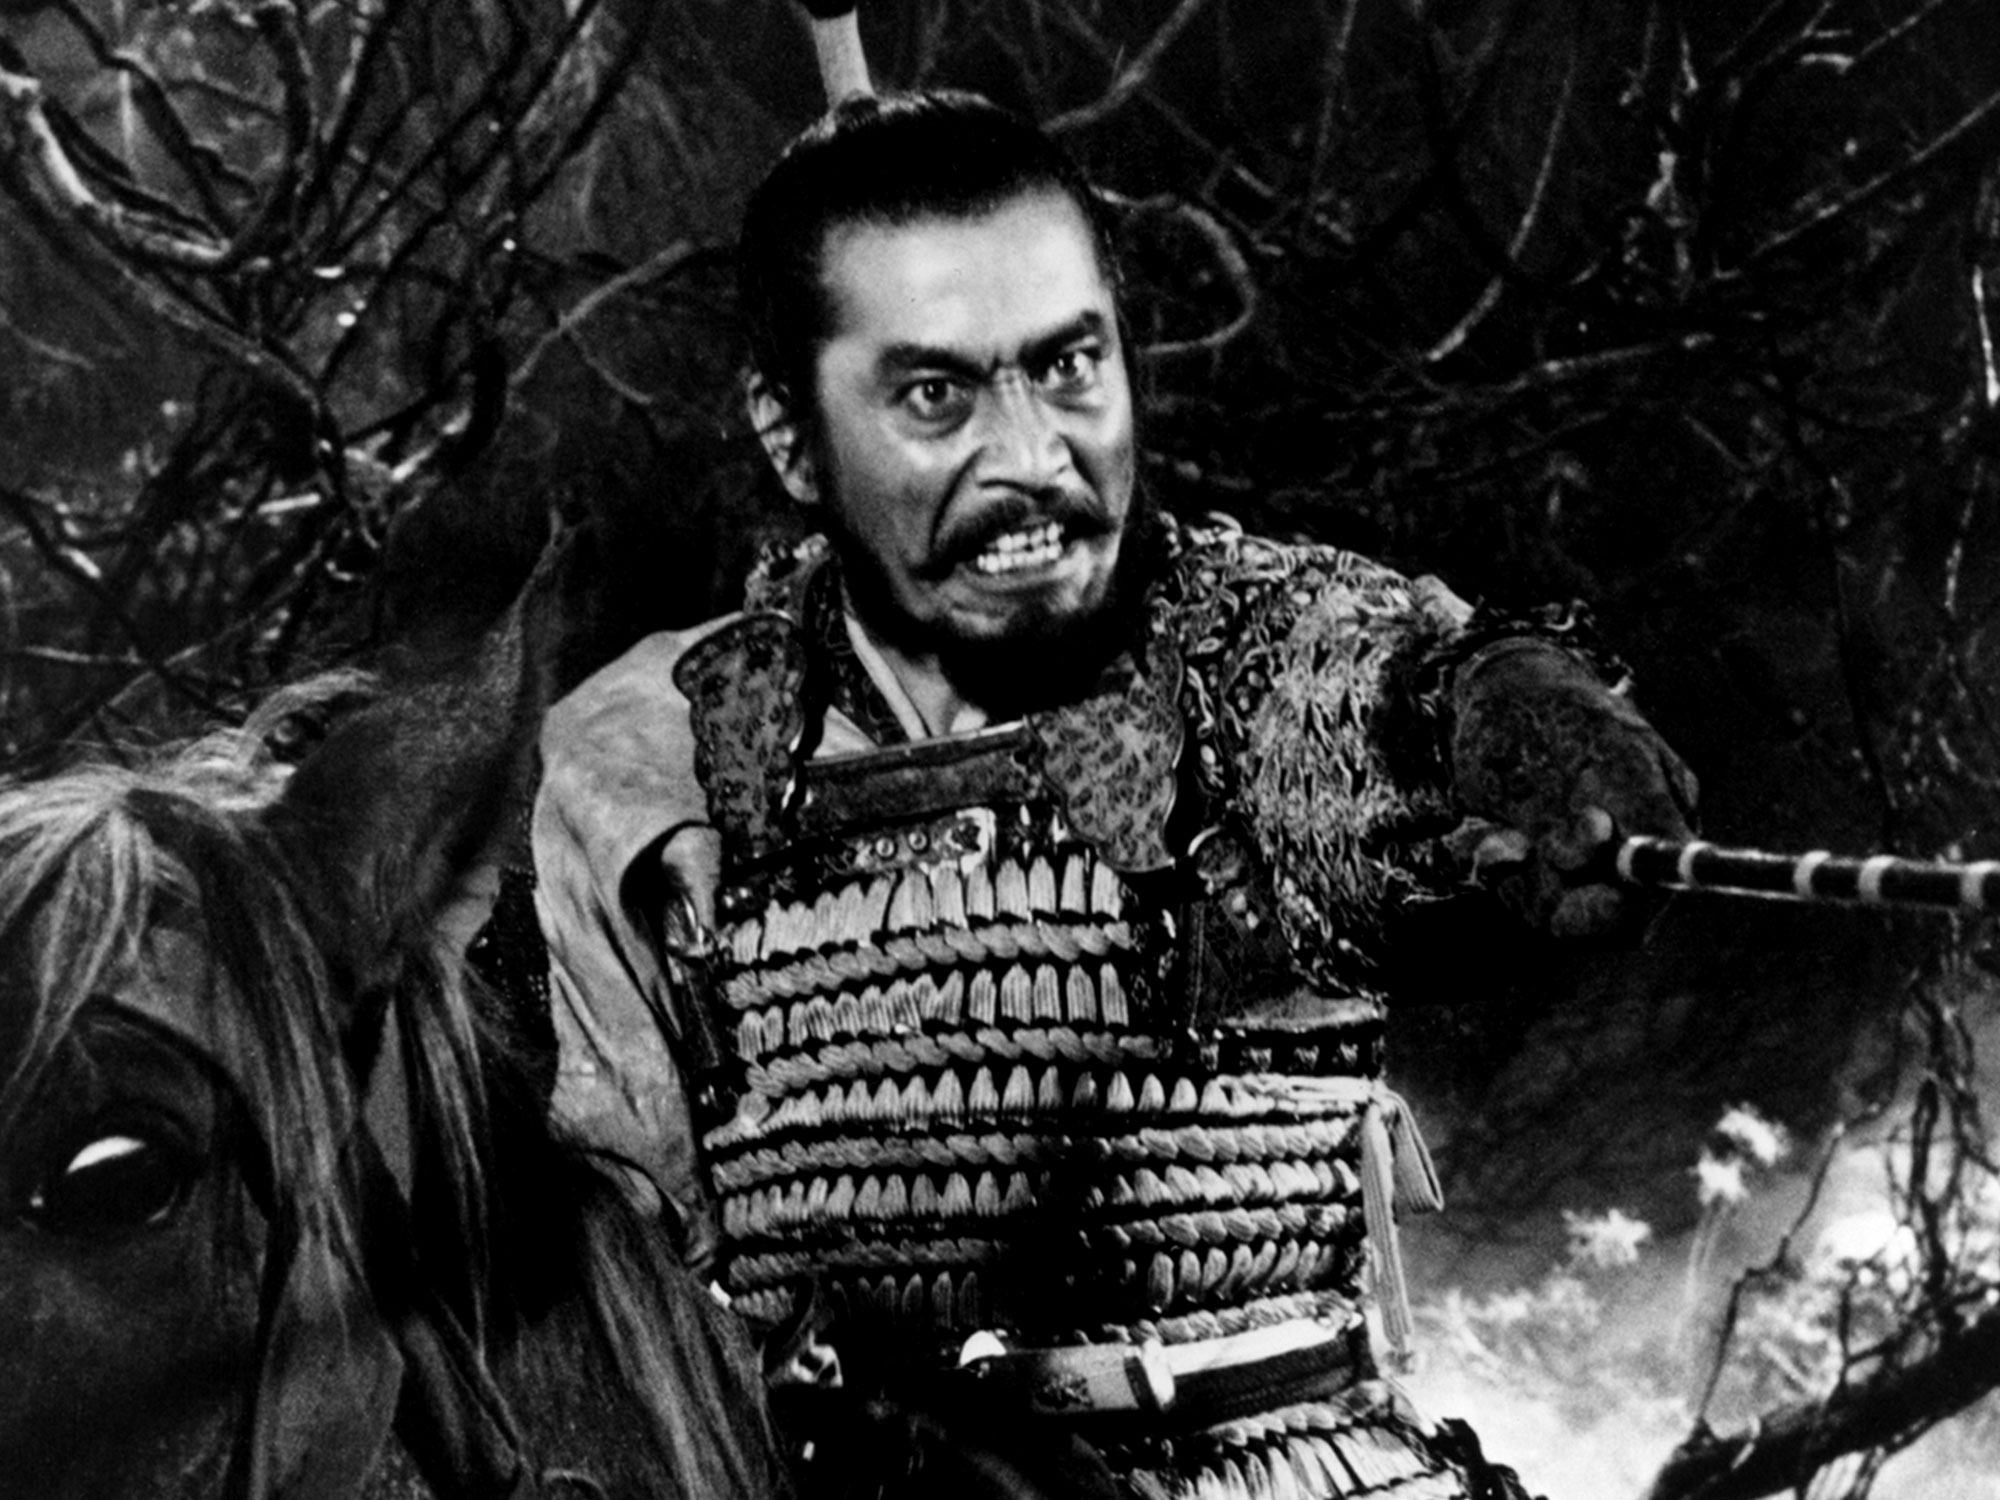 Toshiro Mifune in Throne of Blood (1957)